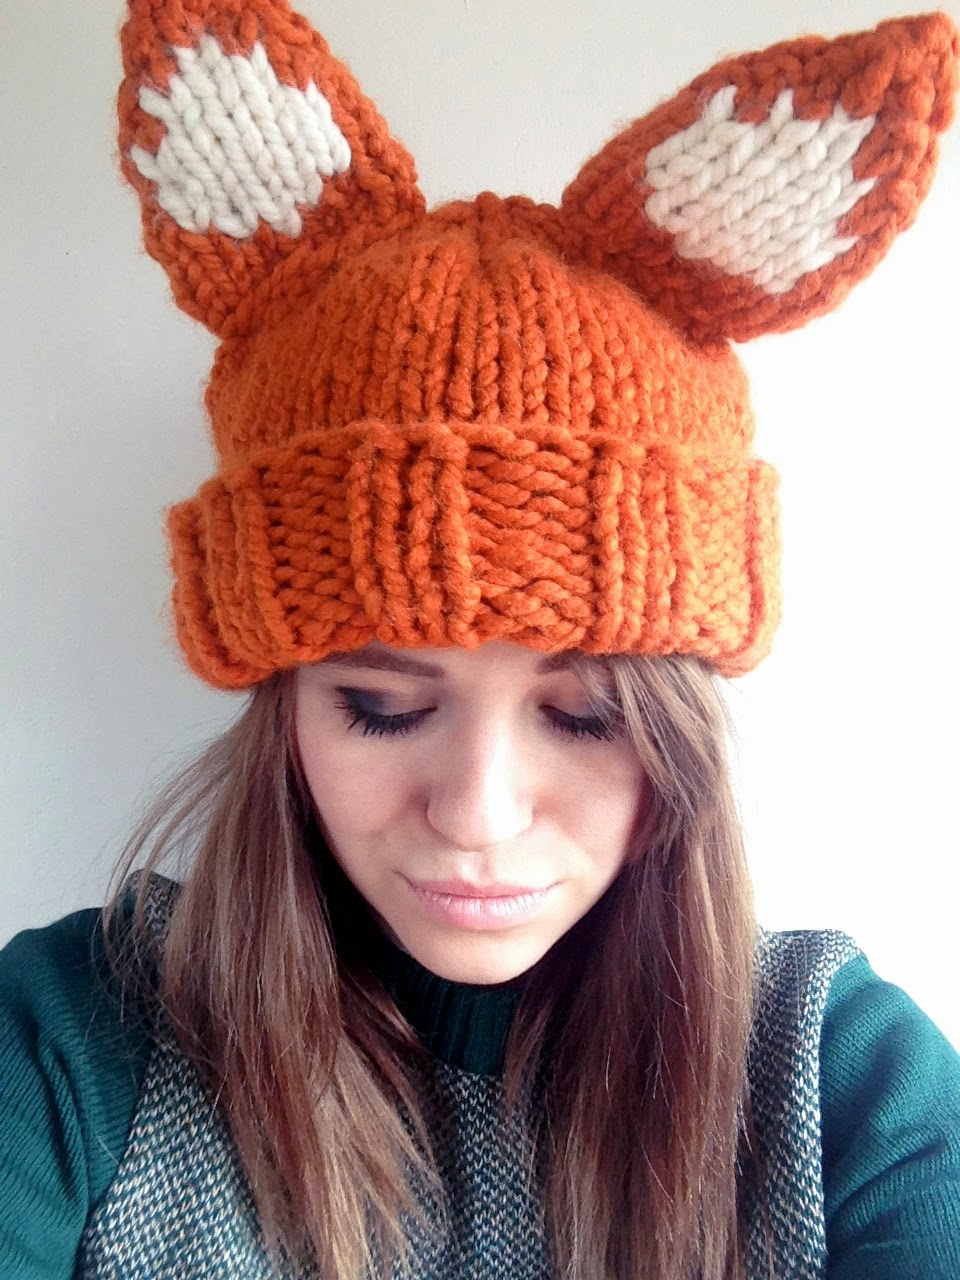 knitted hats 9. squirrel hat ilacgav